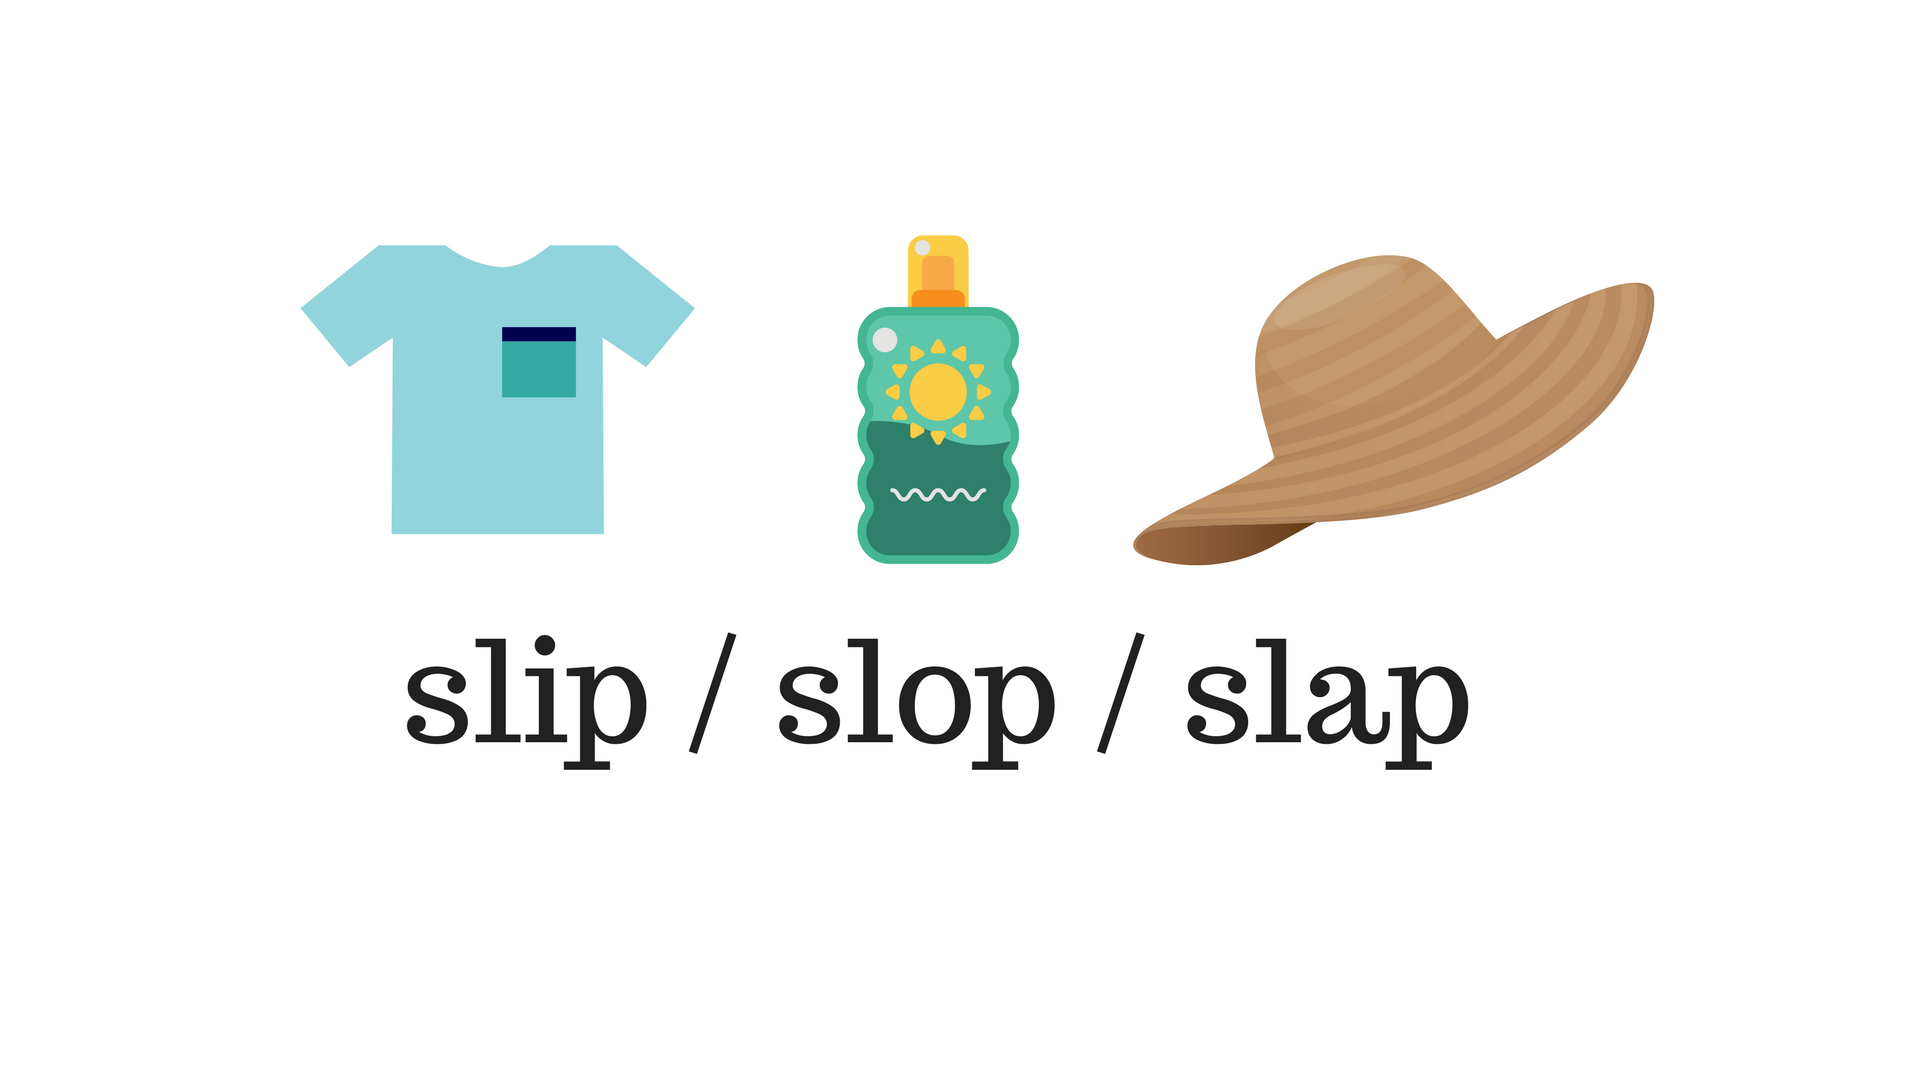 """Revised slide 2/2: This slide is focused on the key message of """"Slip/slop/slap"""". There's plenty of white space around the central piece of information. Extra text and graphics that were in the original slide have been removed."""